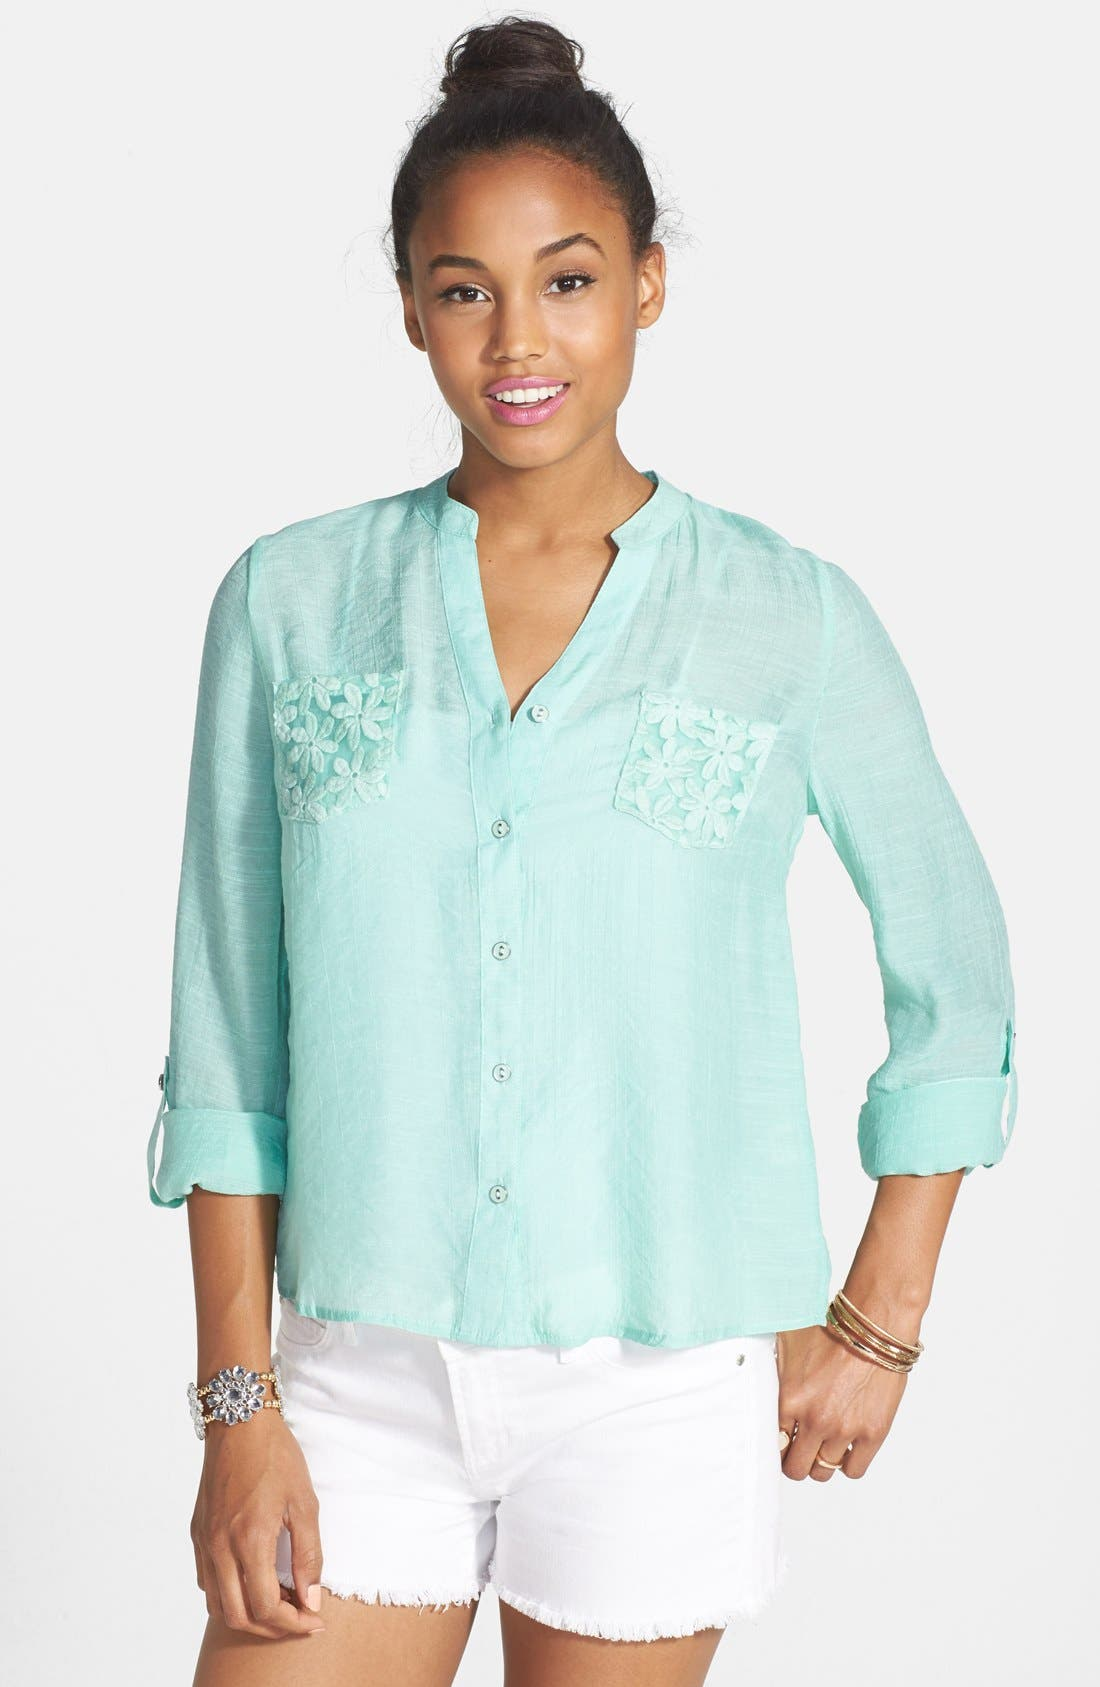 Alternate Image 1 Selected - Blu Pepper Embroidered Back Button Shirt (Juniors)